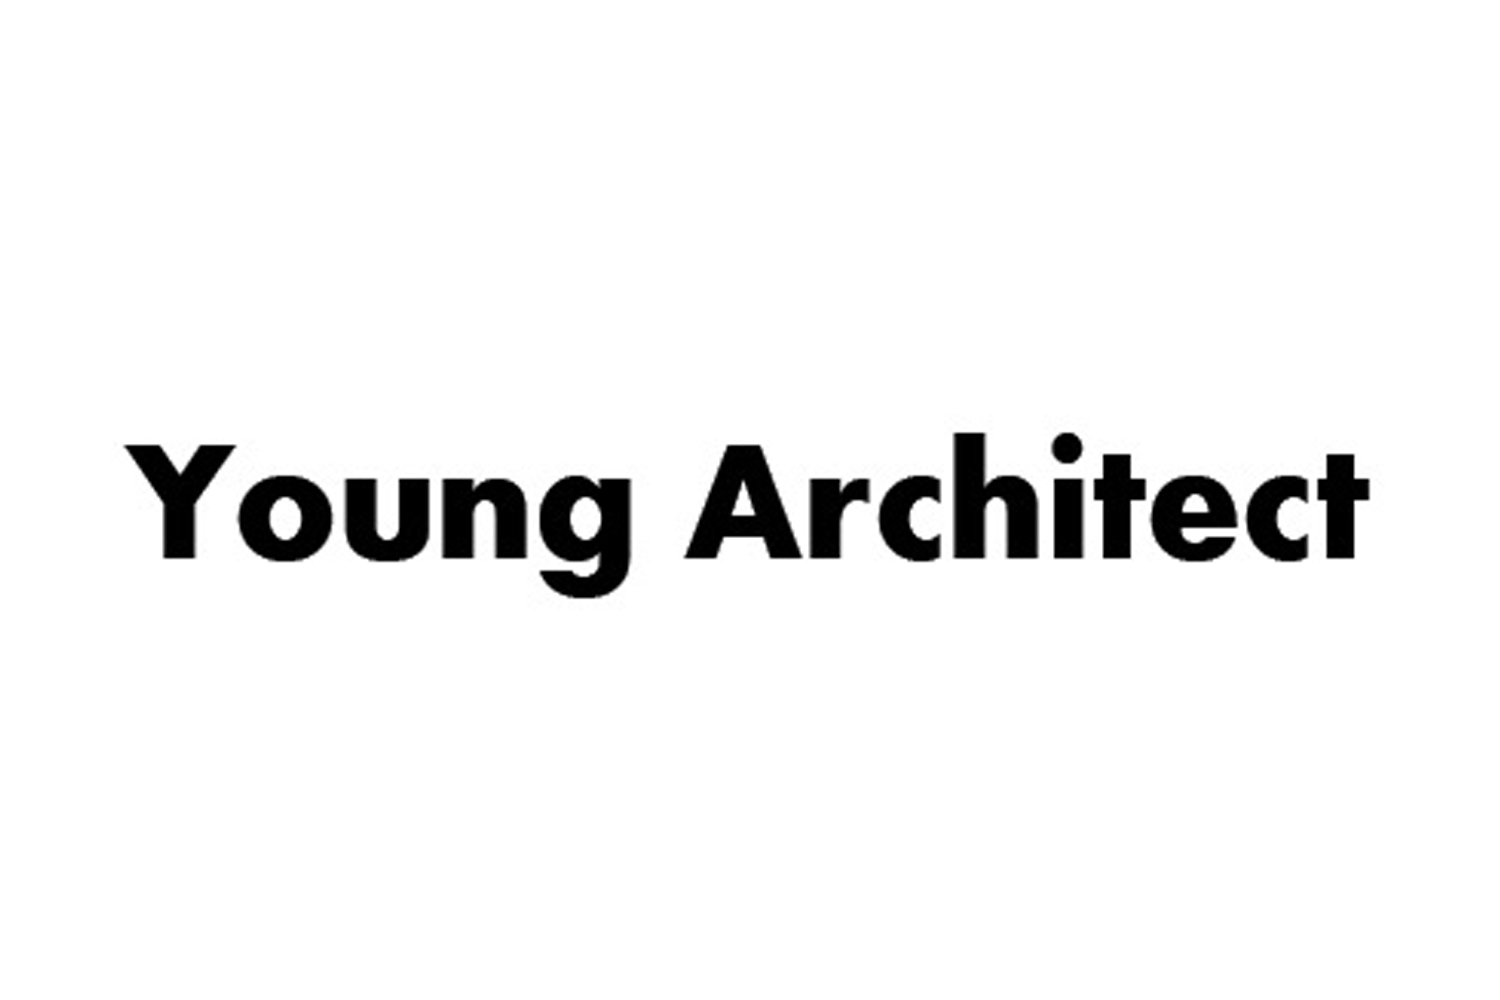 Resource_Young Architect.jpg